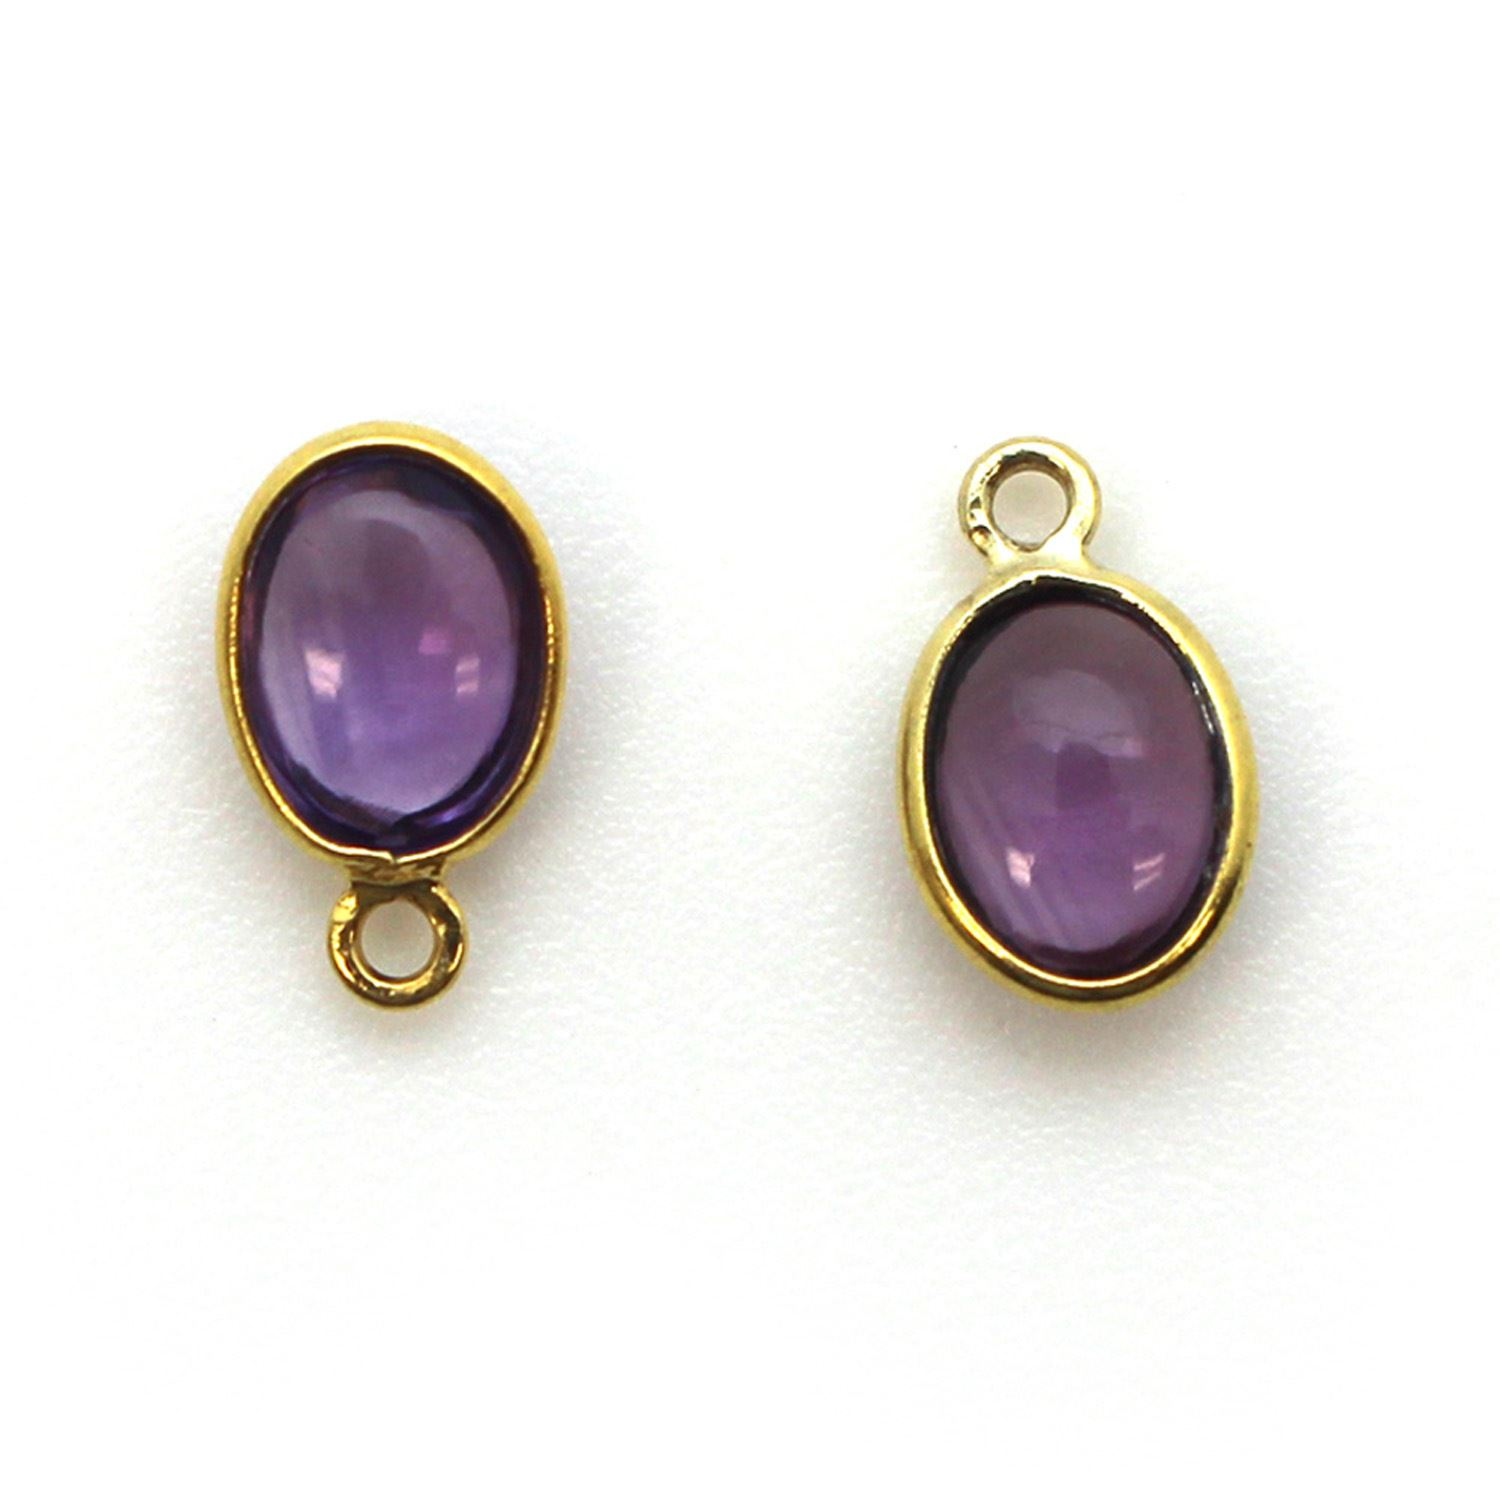 Bezel Charm Pendant - Gold Plated Silver Charm - Natural Amethyst-Tiny Oval Shape